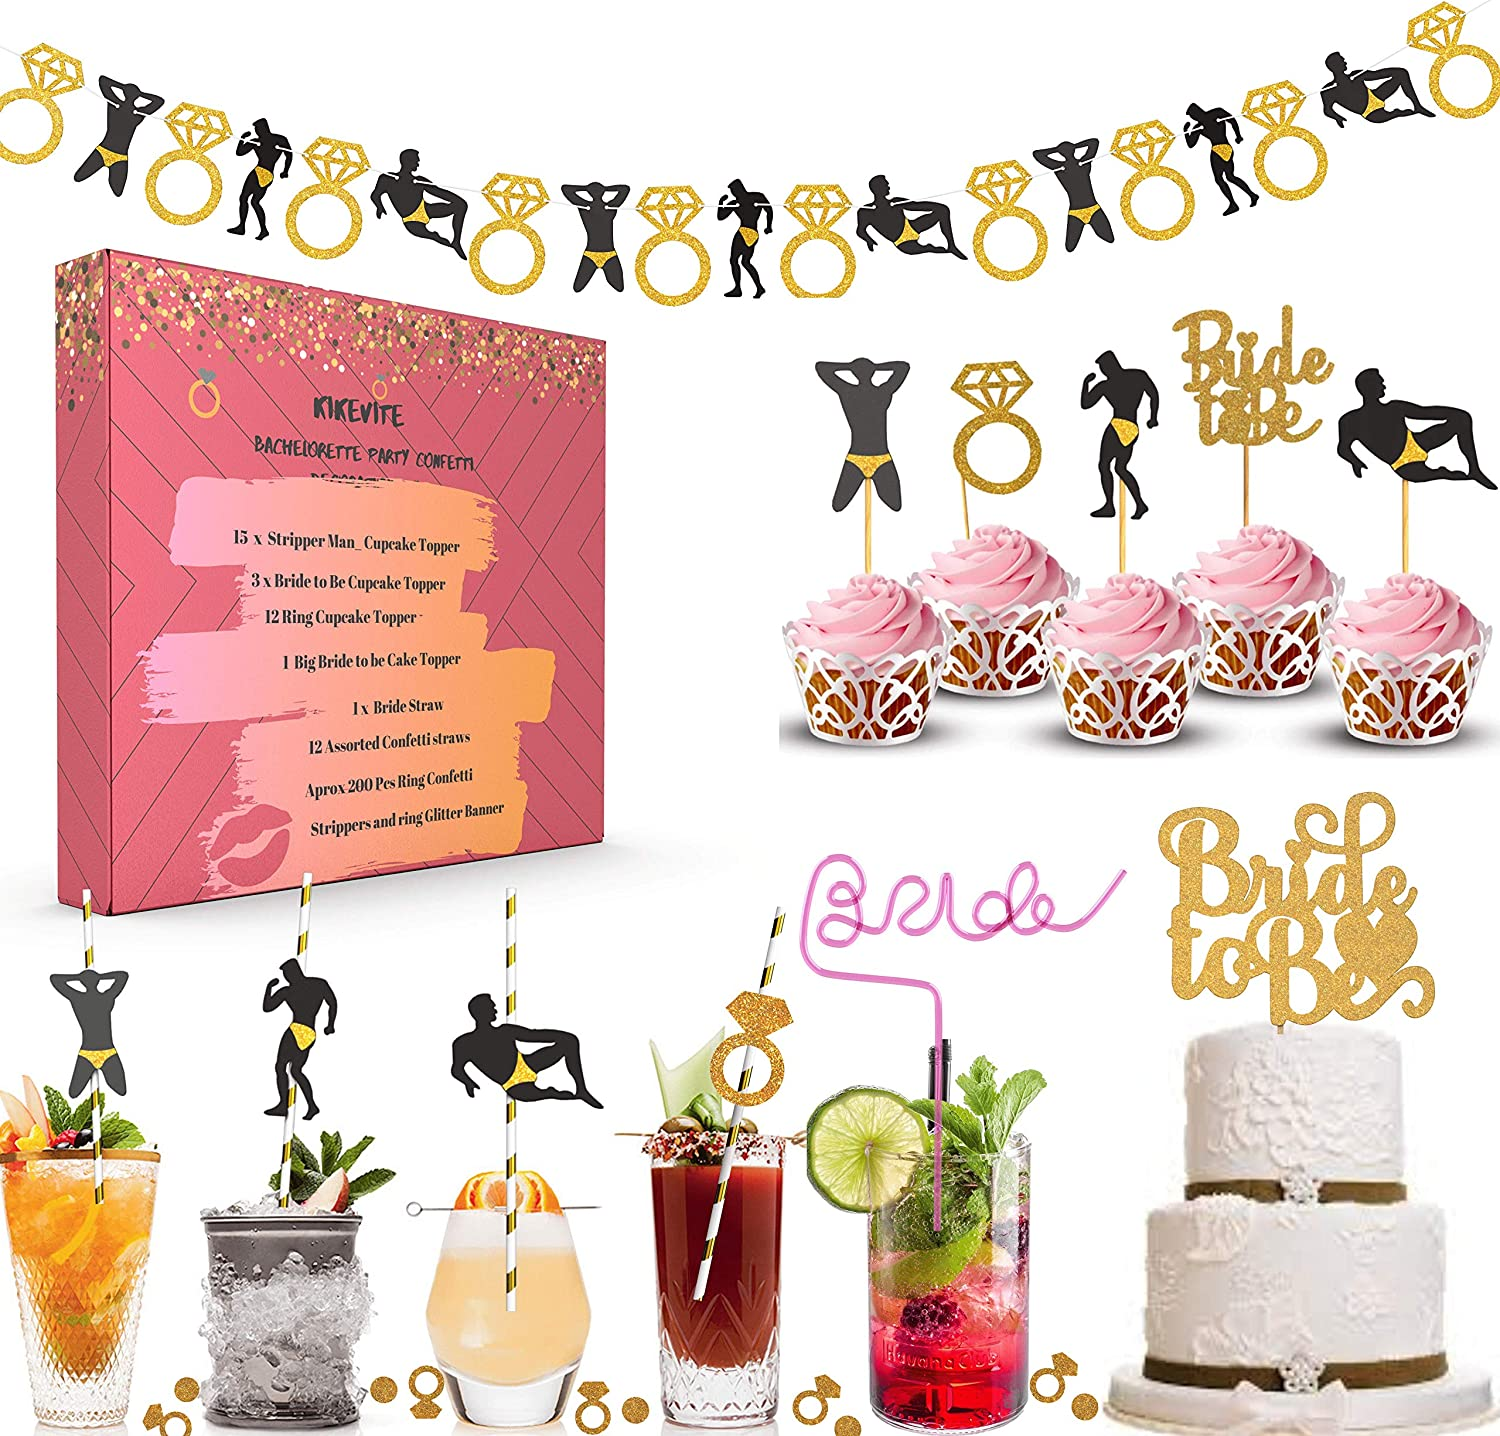 Bachelorette Party Decorations Kit I Bar Snack Table Decor I Bridal Shower Supplies I Stripper Man Engagement Ring Banner Garland, Gold Glitter Confetti, Cupcake Cake Topper, Straws Dancer Bride to Be